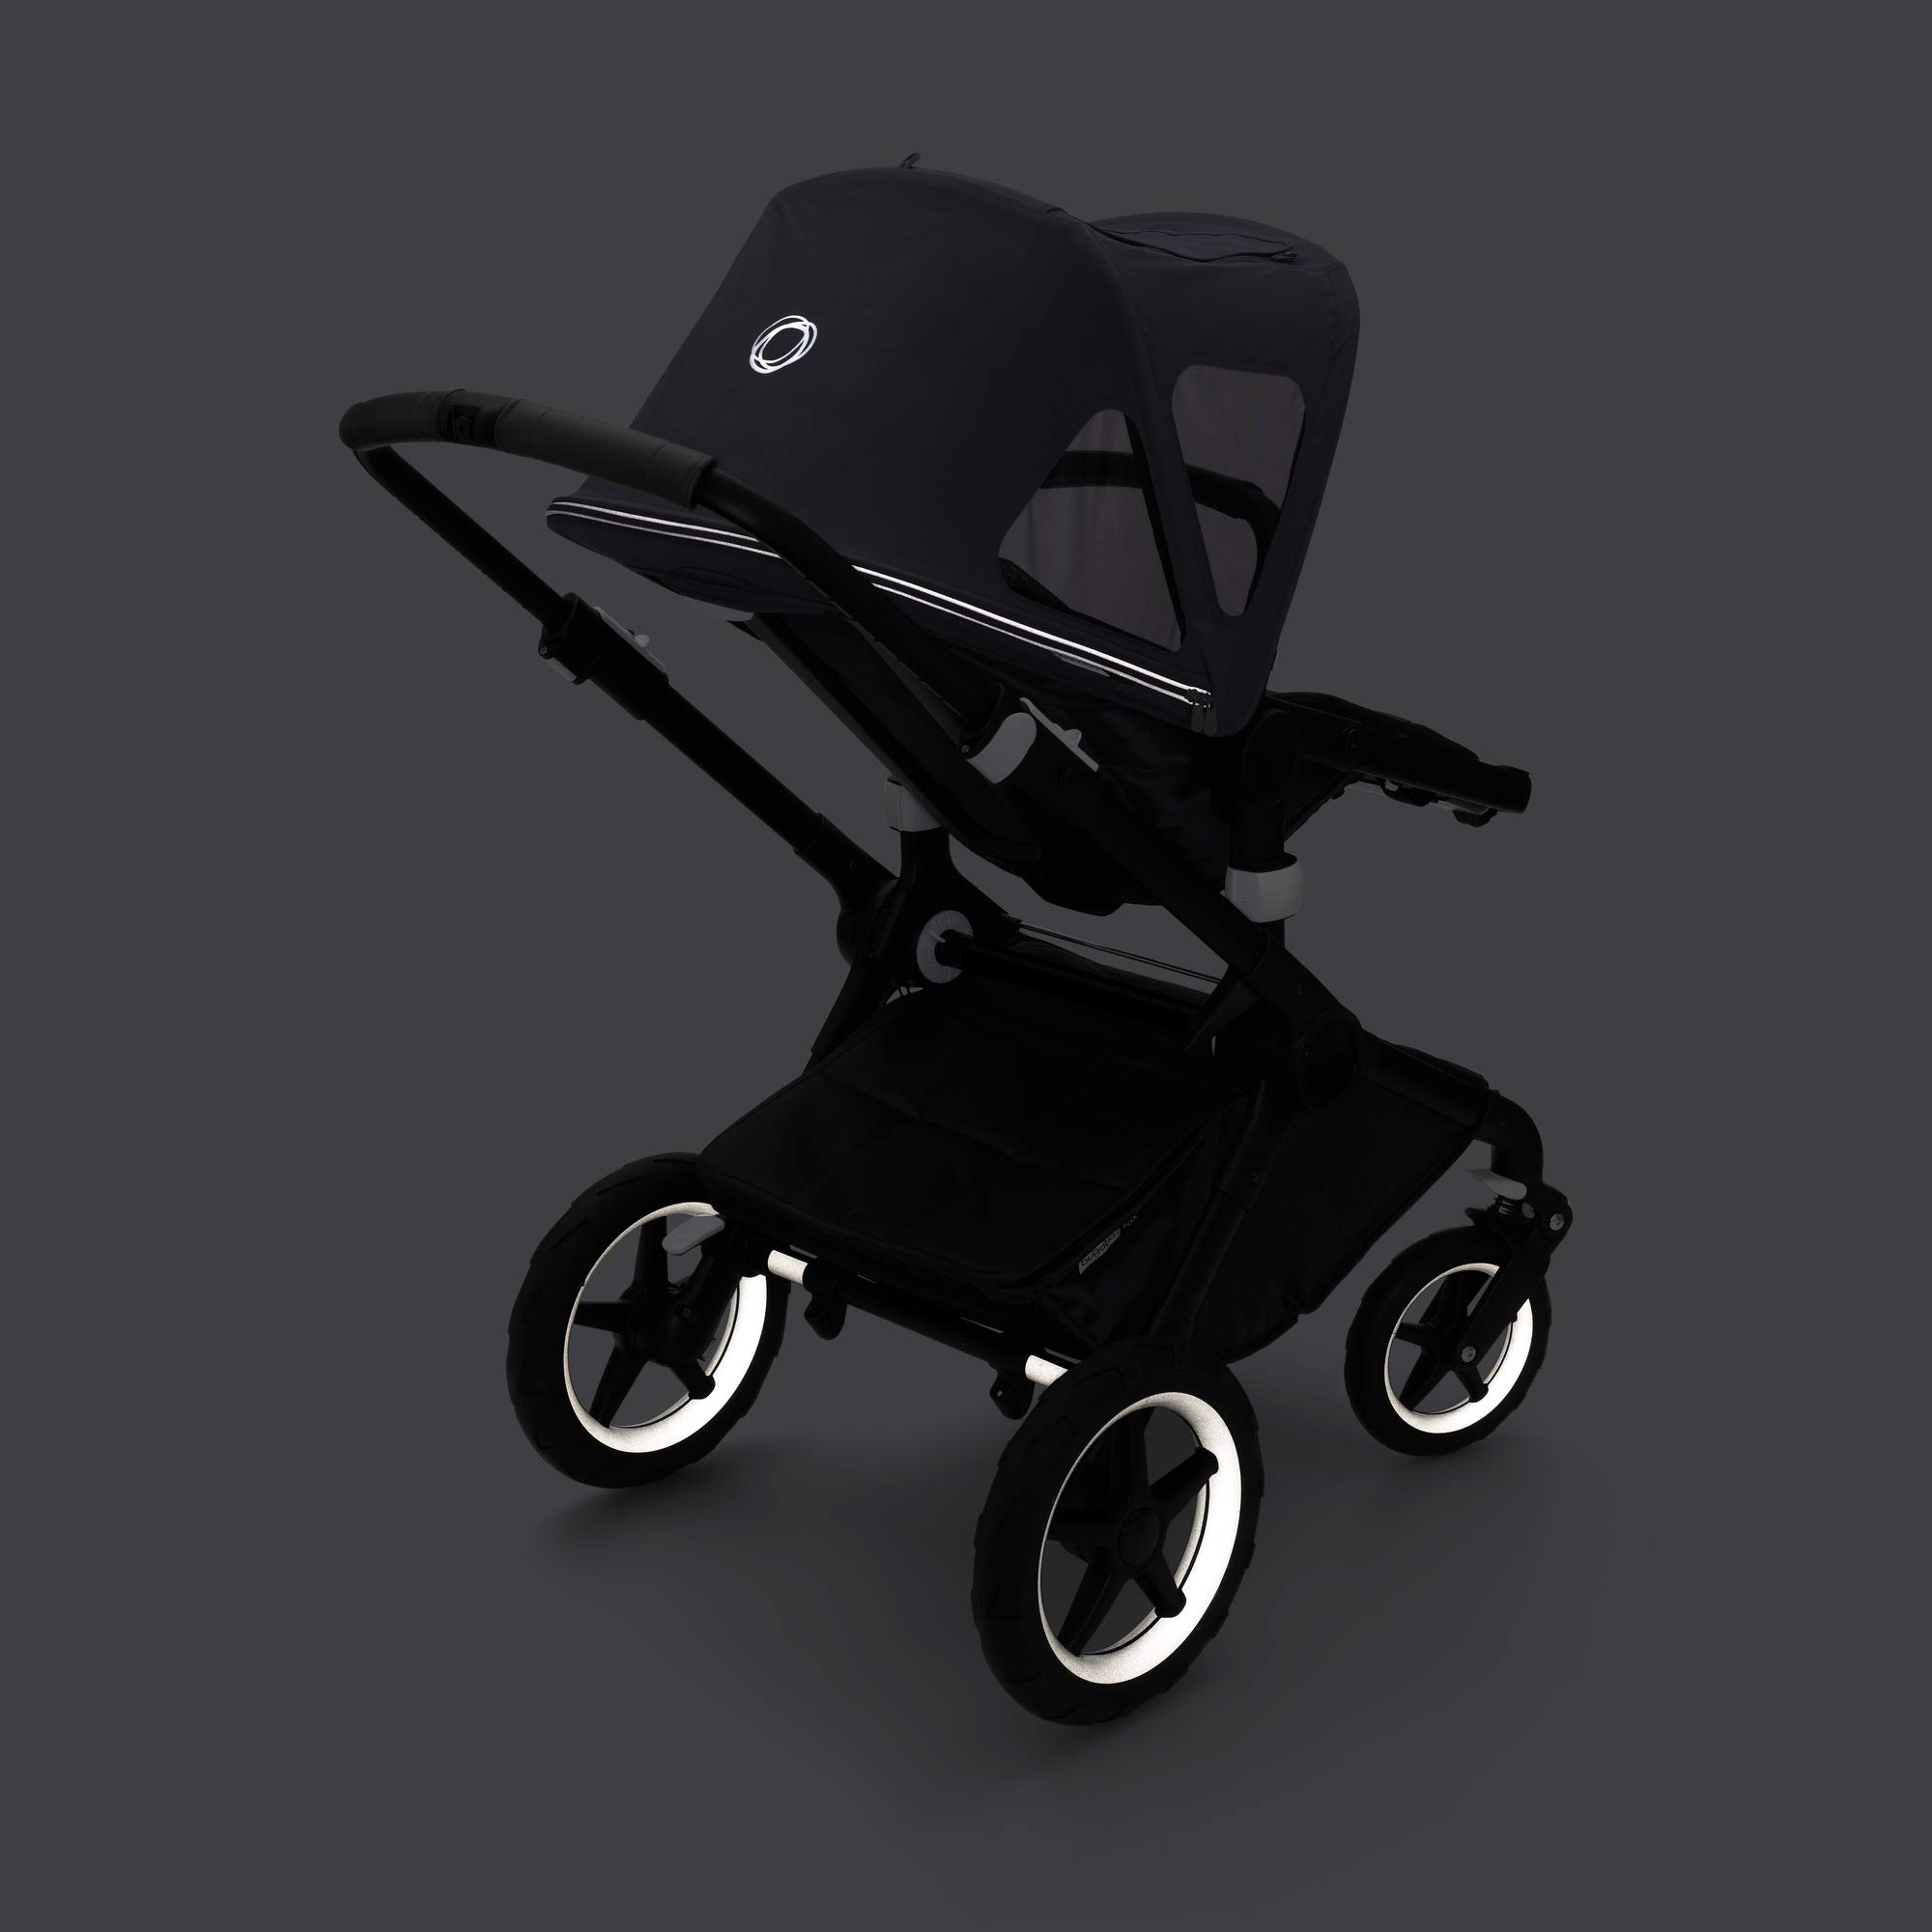 Bugaboo Fox/Cameleon3 Breezy Sun Canopy- Extendable Sun Canopy with Mesh Ventilation Panels, Made with Reflective Materials for Nighttime Strolling